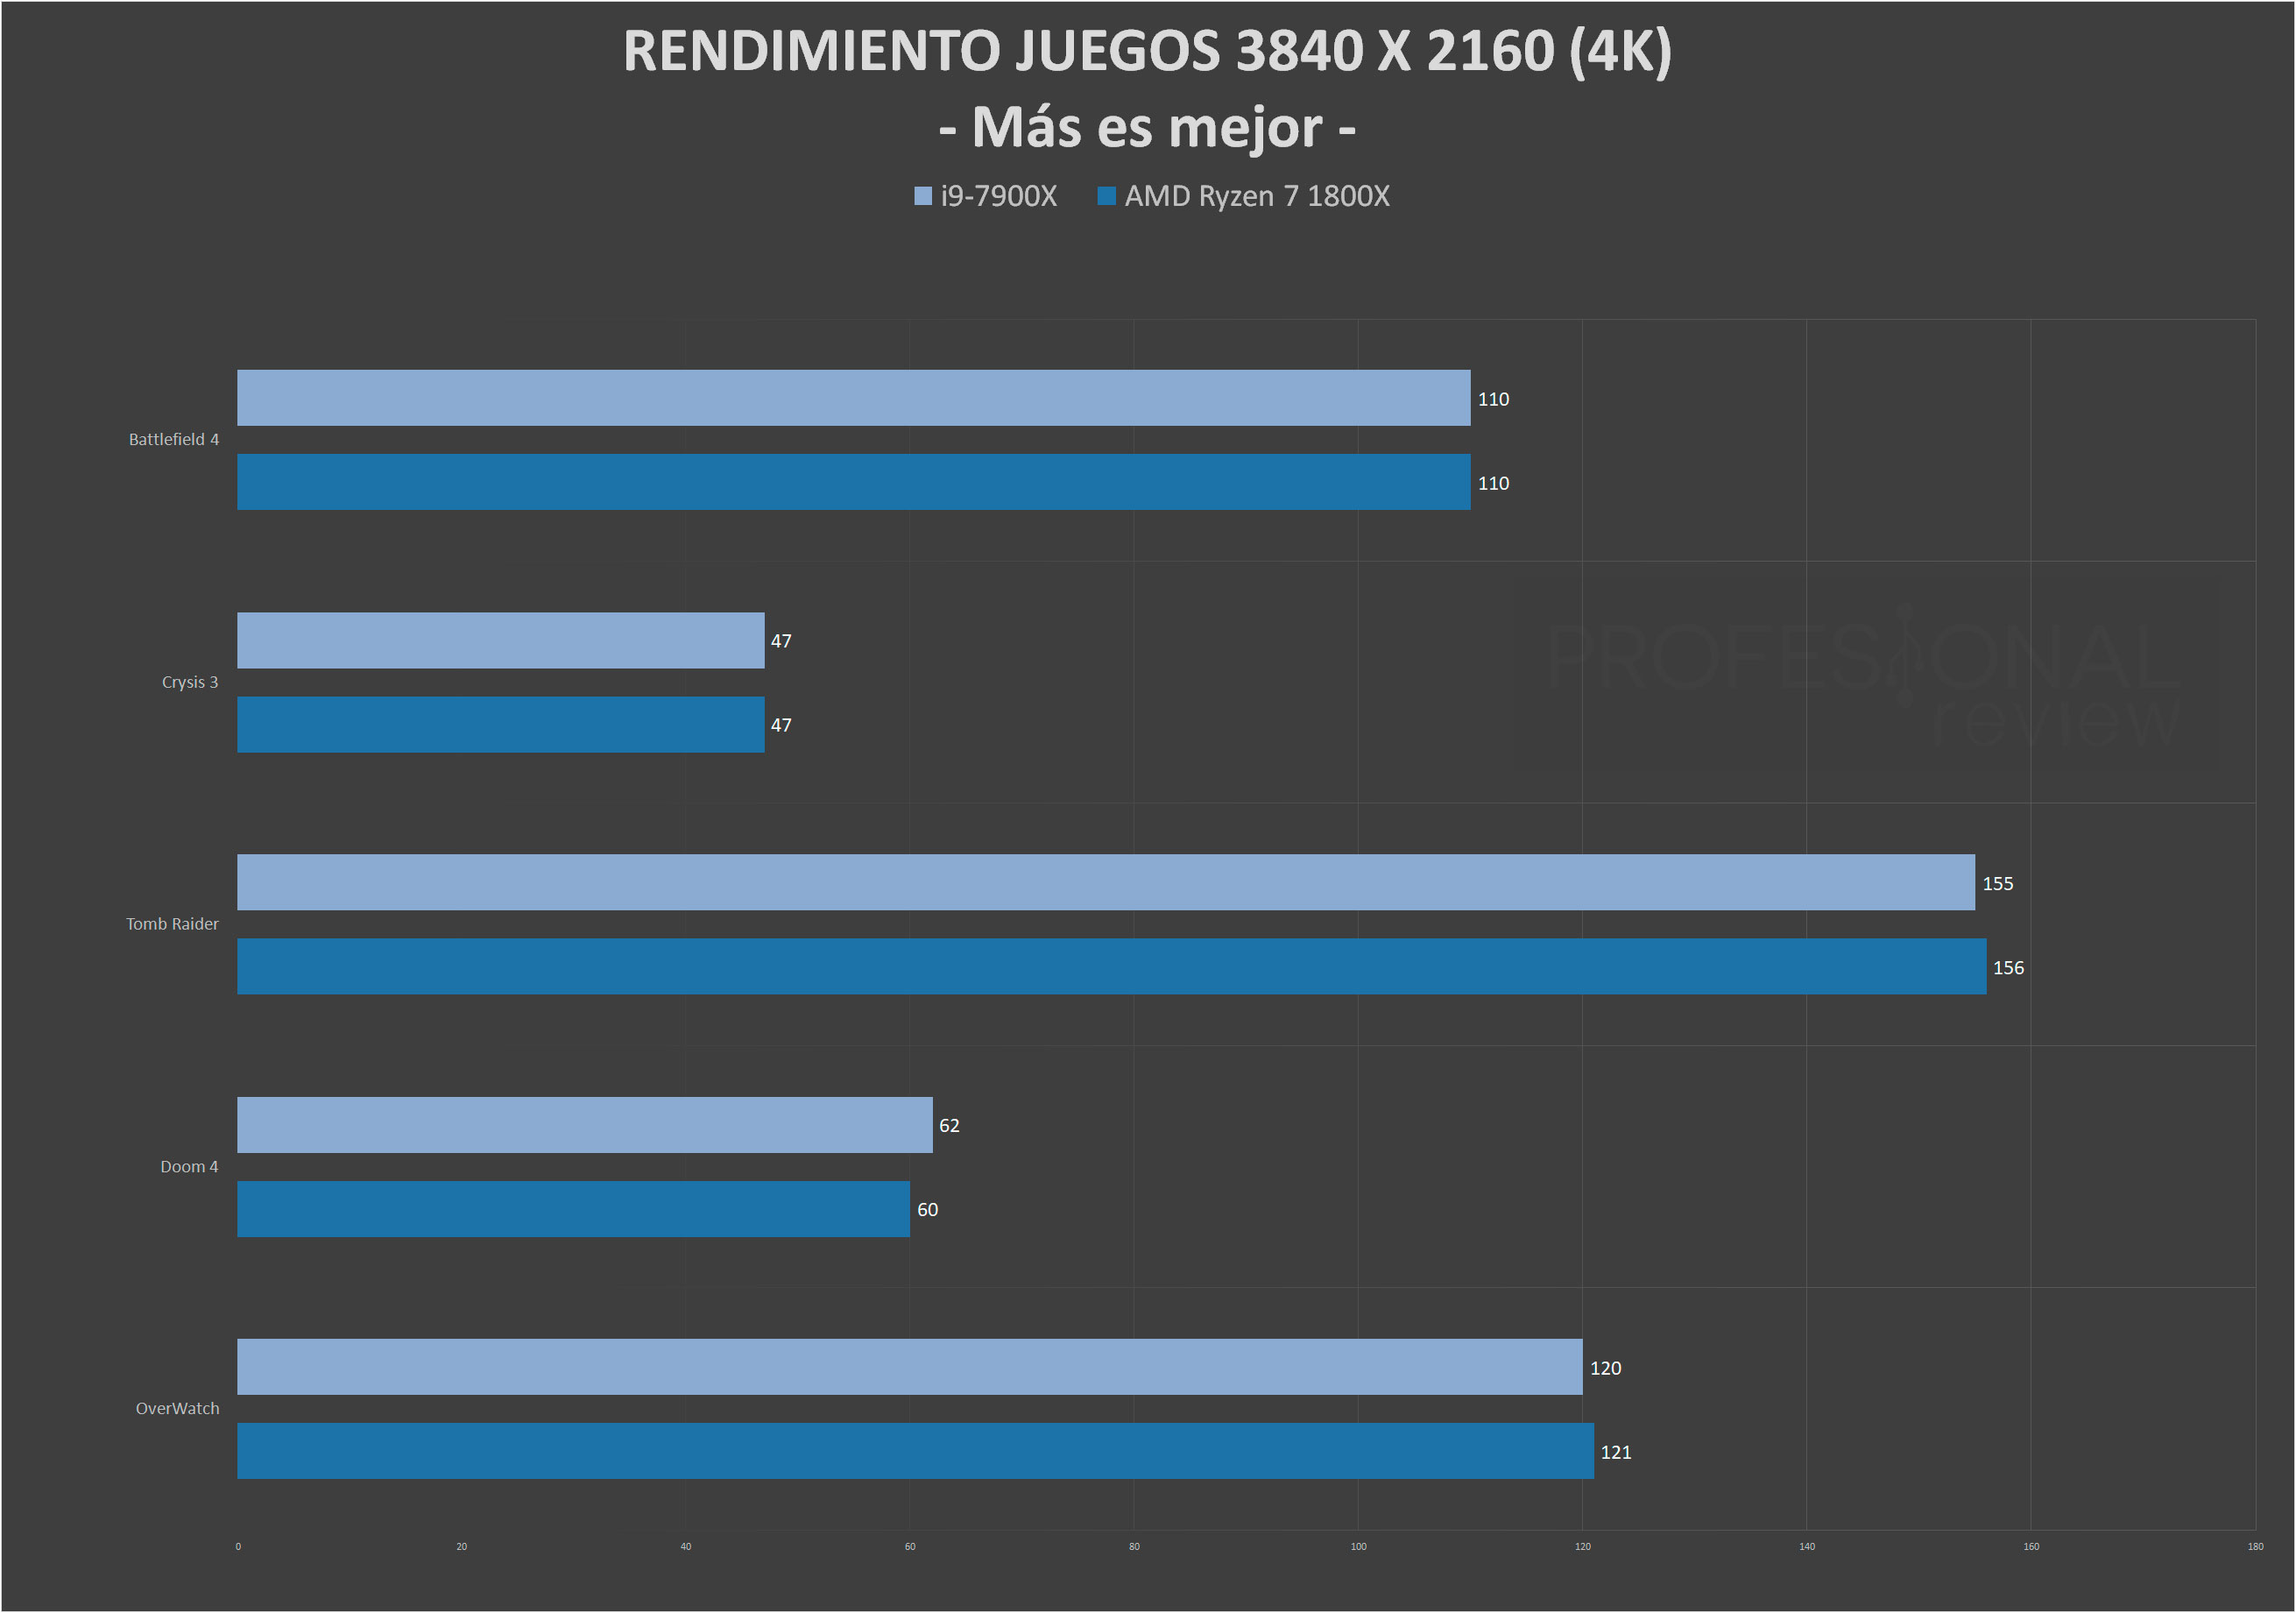 Intel Core i9 7900X vs AMD Ryzen 7 1800X